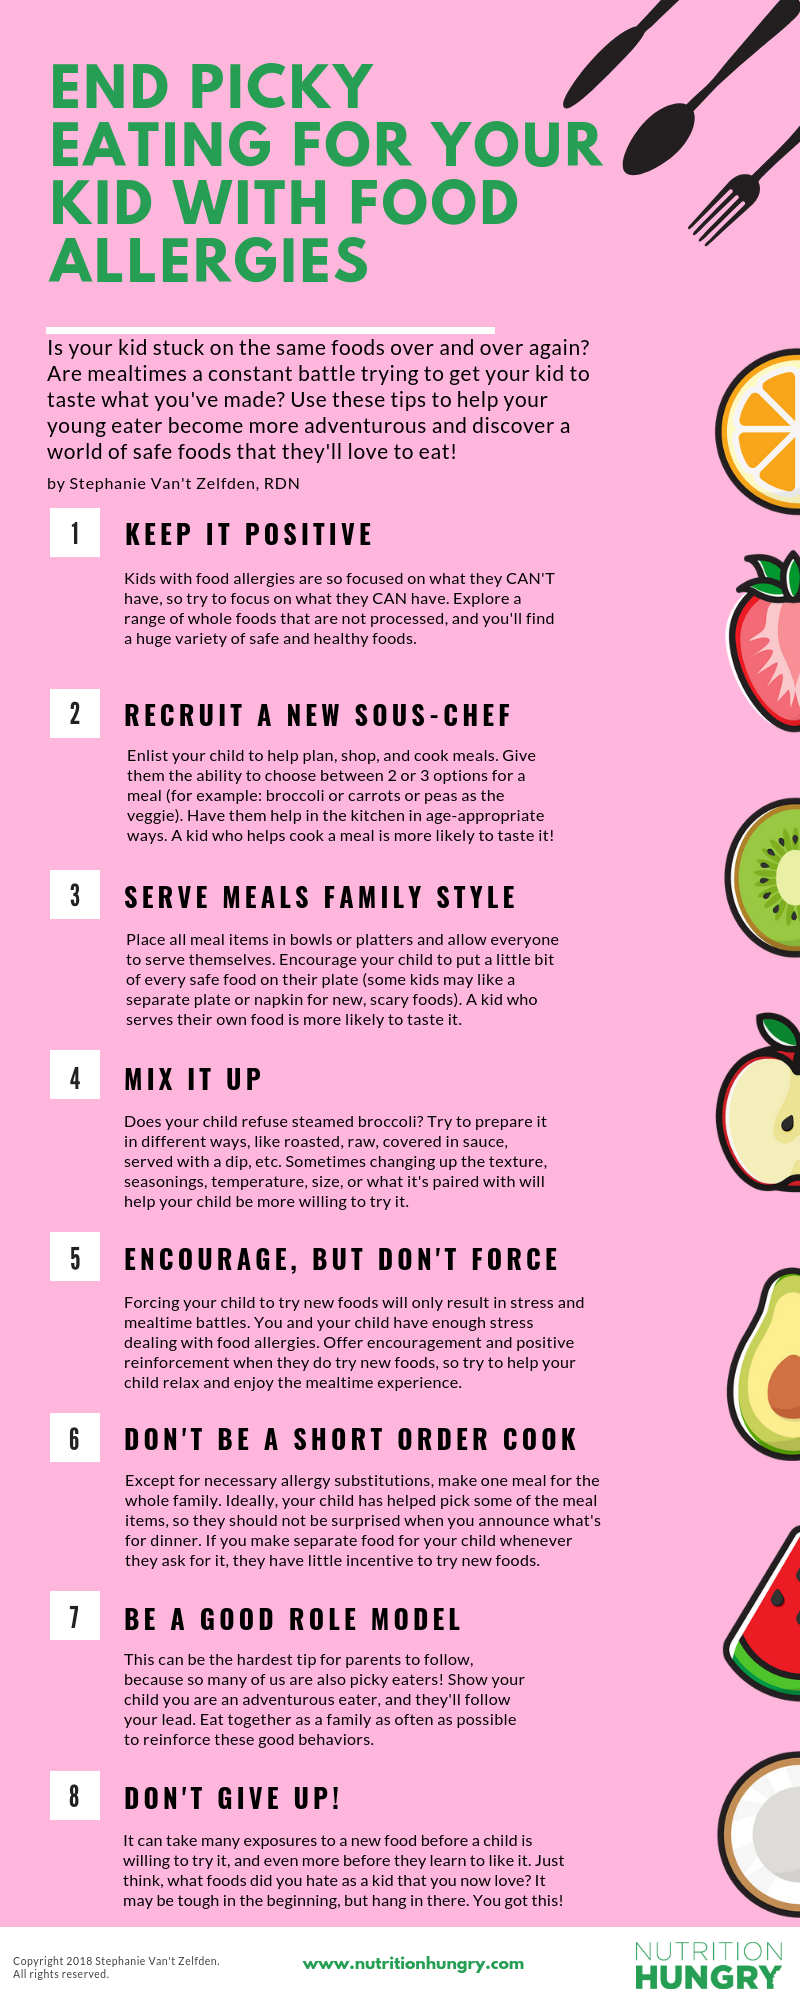 picky eating tips for food allergy kids.png